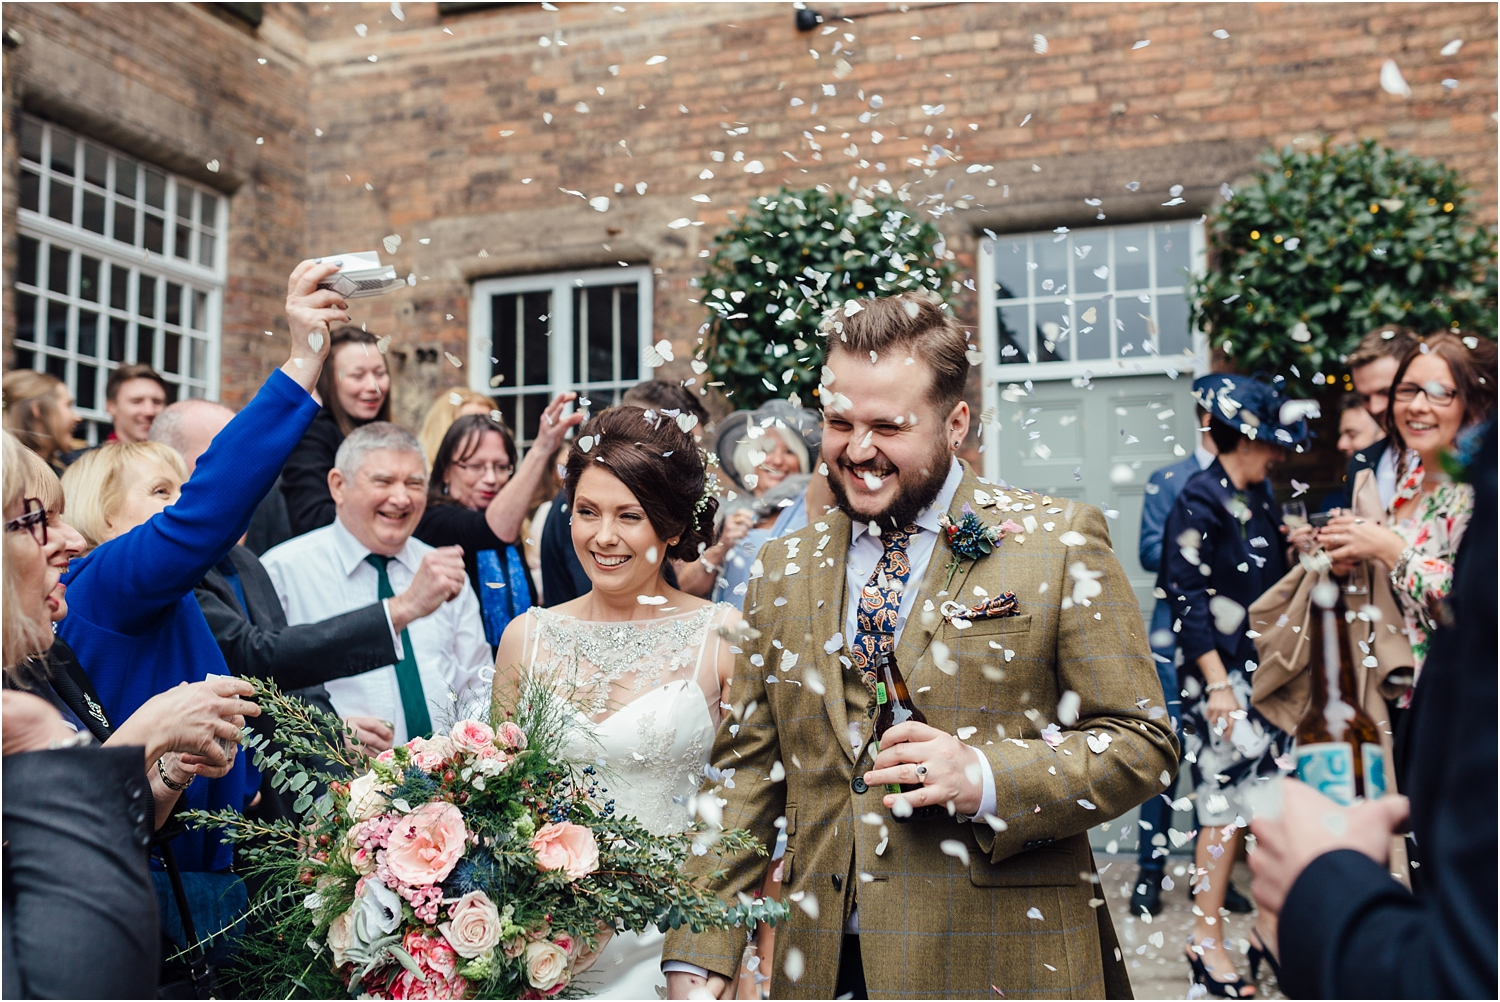 Victoria-Ben-The-West-Mill-darley-abbey-natural-relaxed-documentary-wedding-photography-photographer-Derby-Nottingham-Derbyshire-Nottinghamshire-Leicestershire-Lincolnshire-East-Midlands_0060.jpg